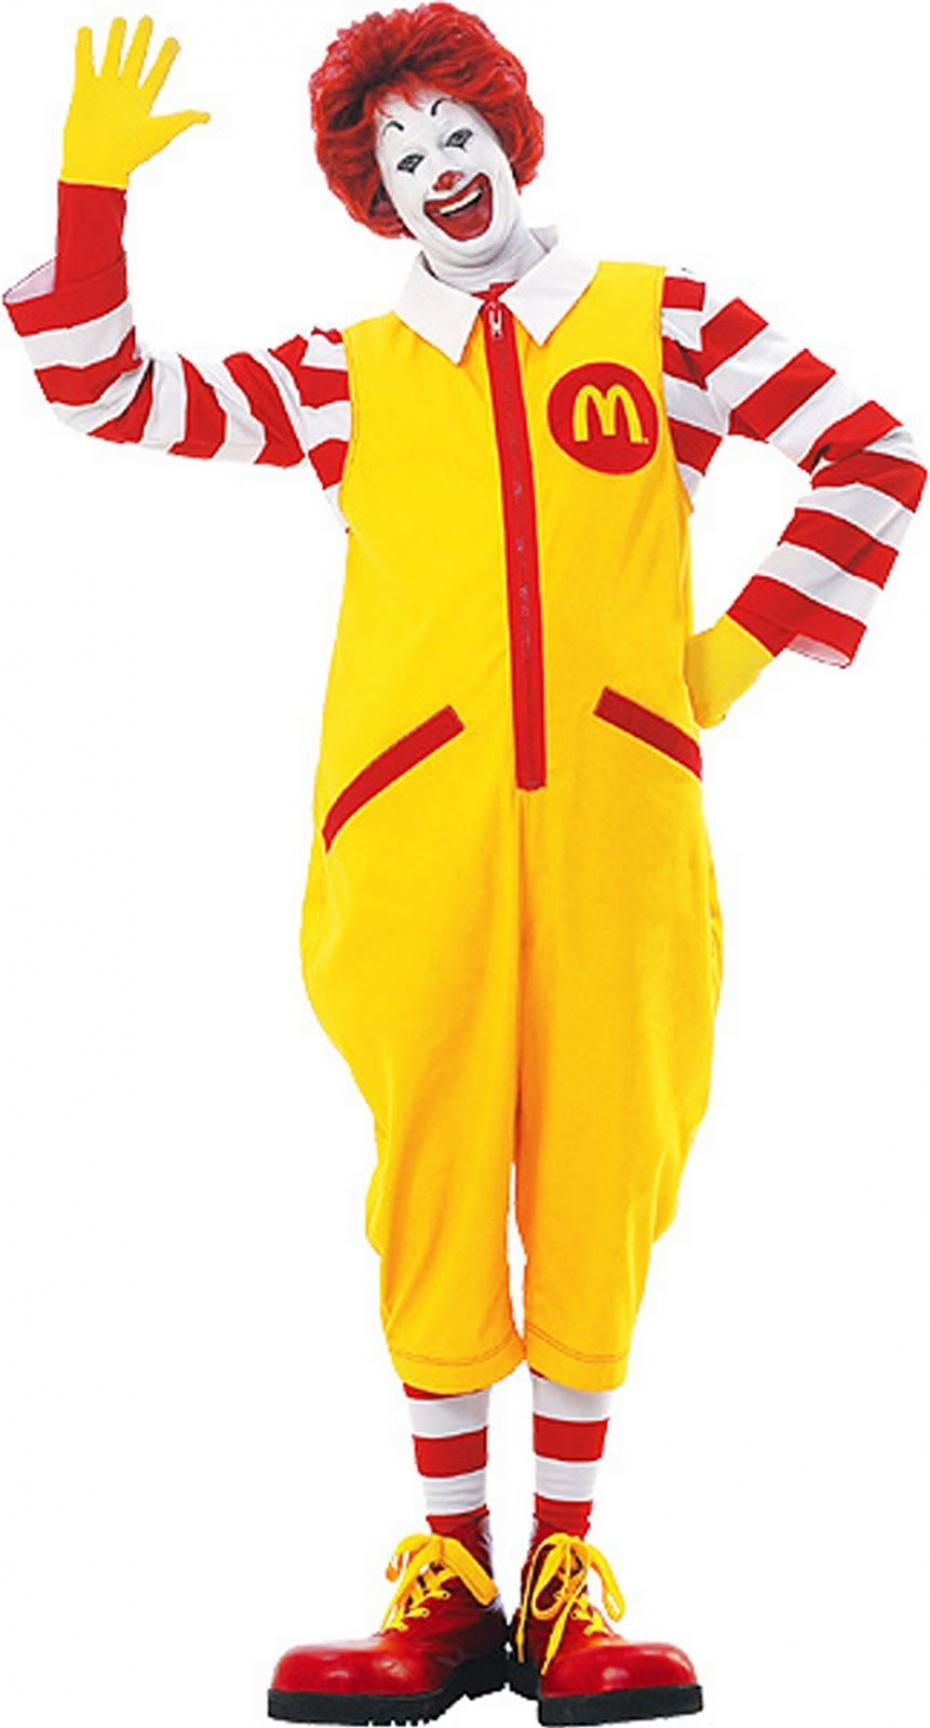 ronald mcdonalds google search clowns clown costumes and makeup